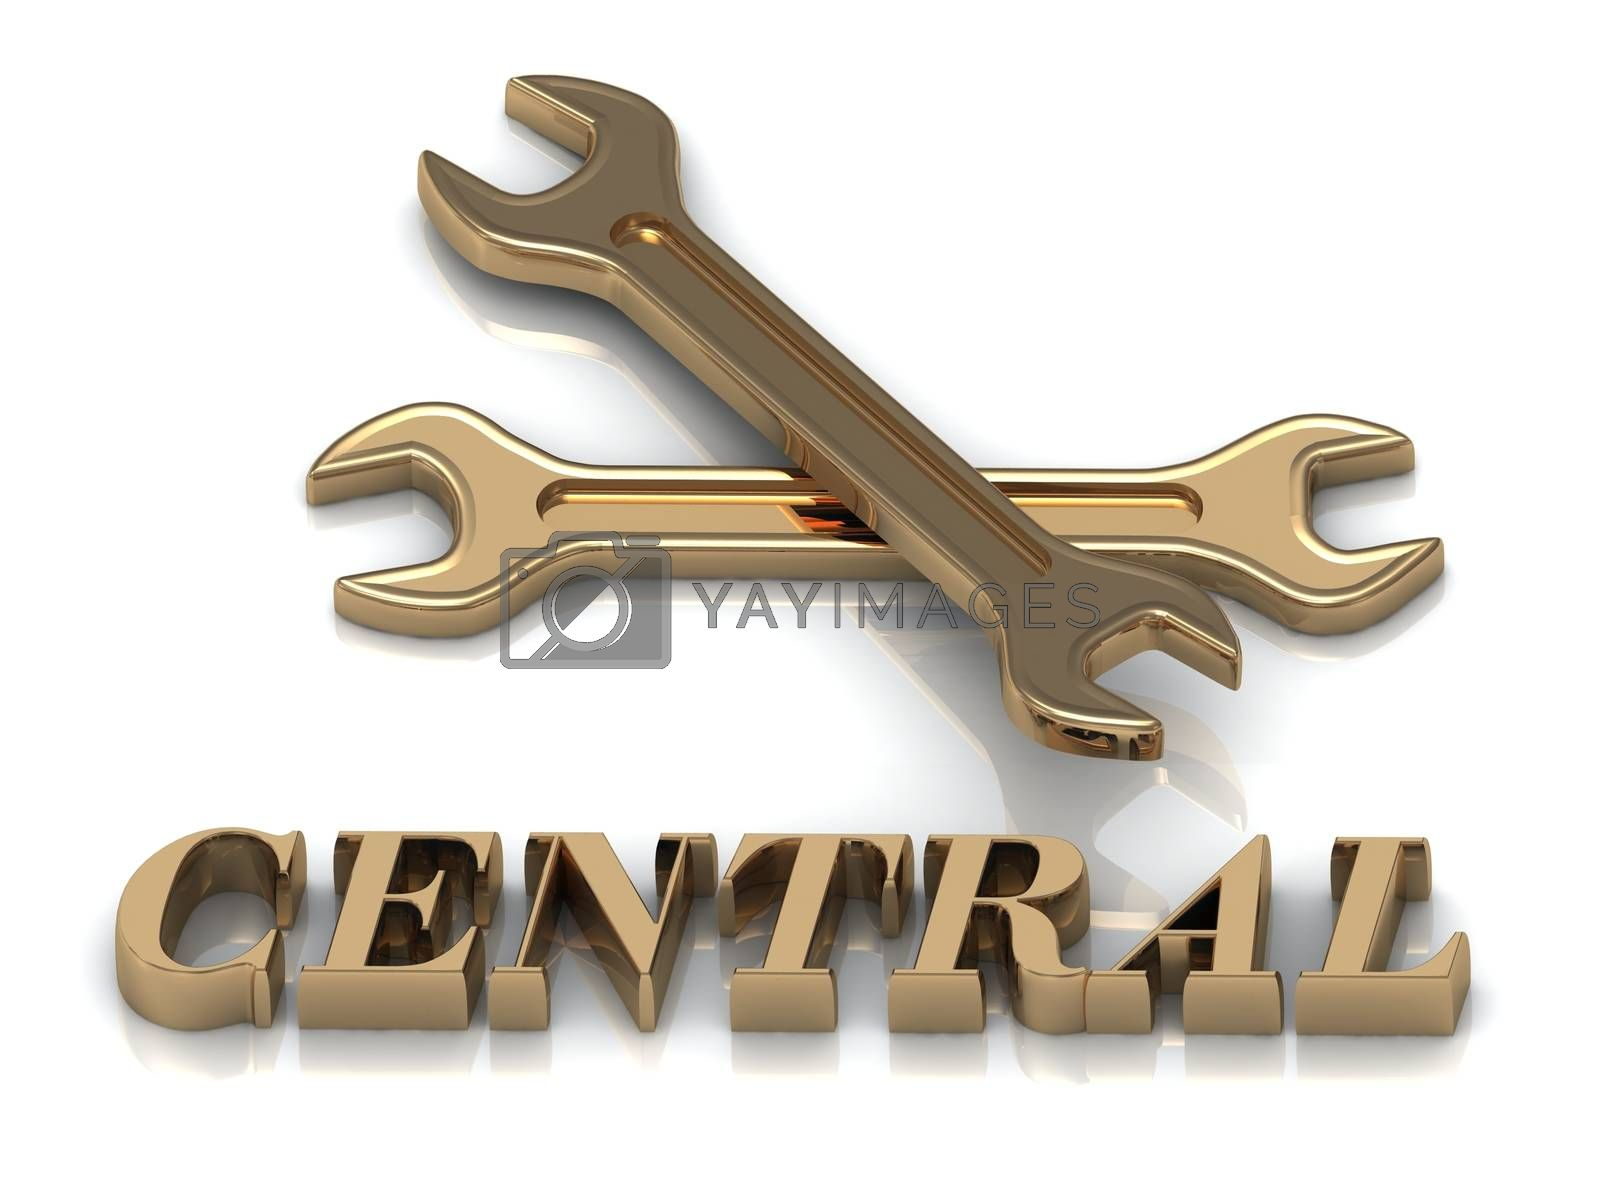 CENTRAL- inscription of metal letters and 2 keys on white background